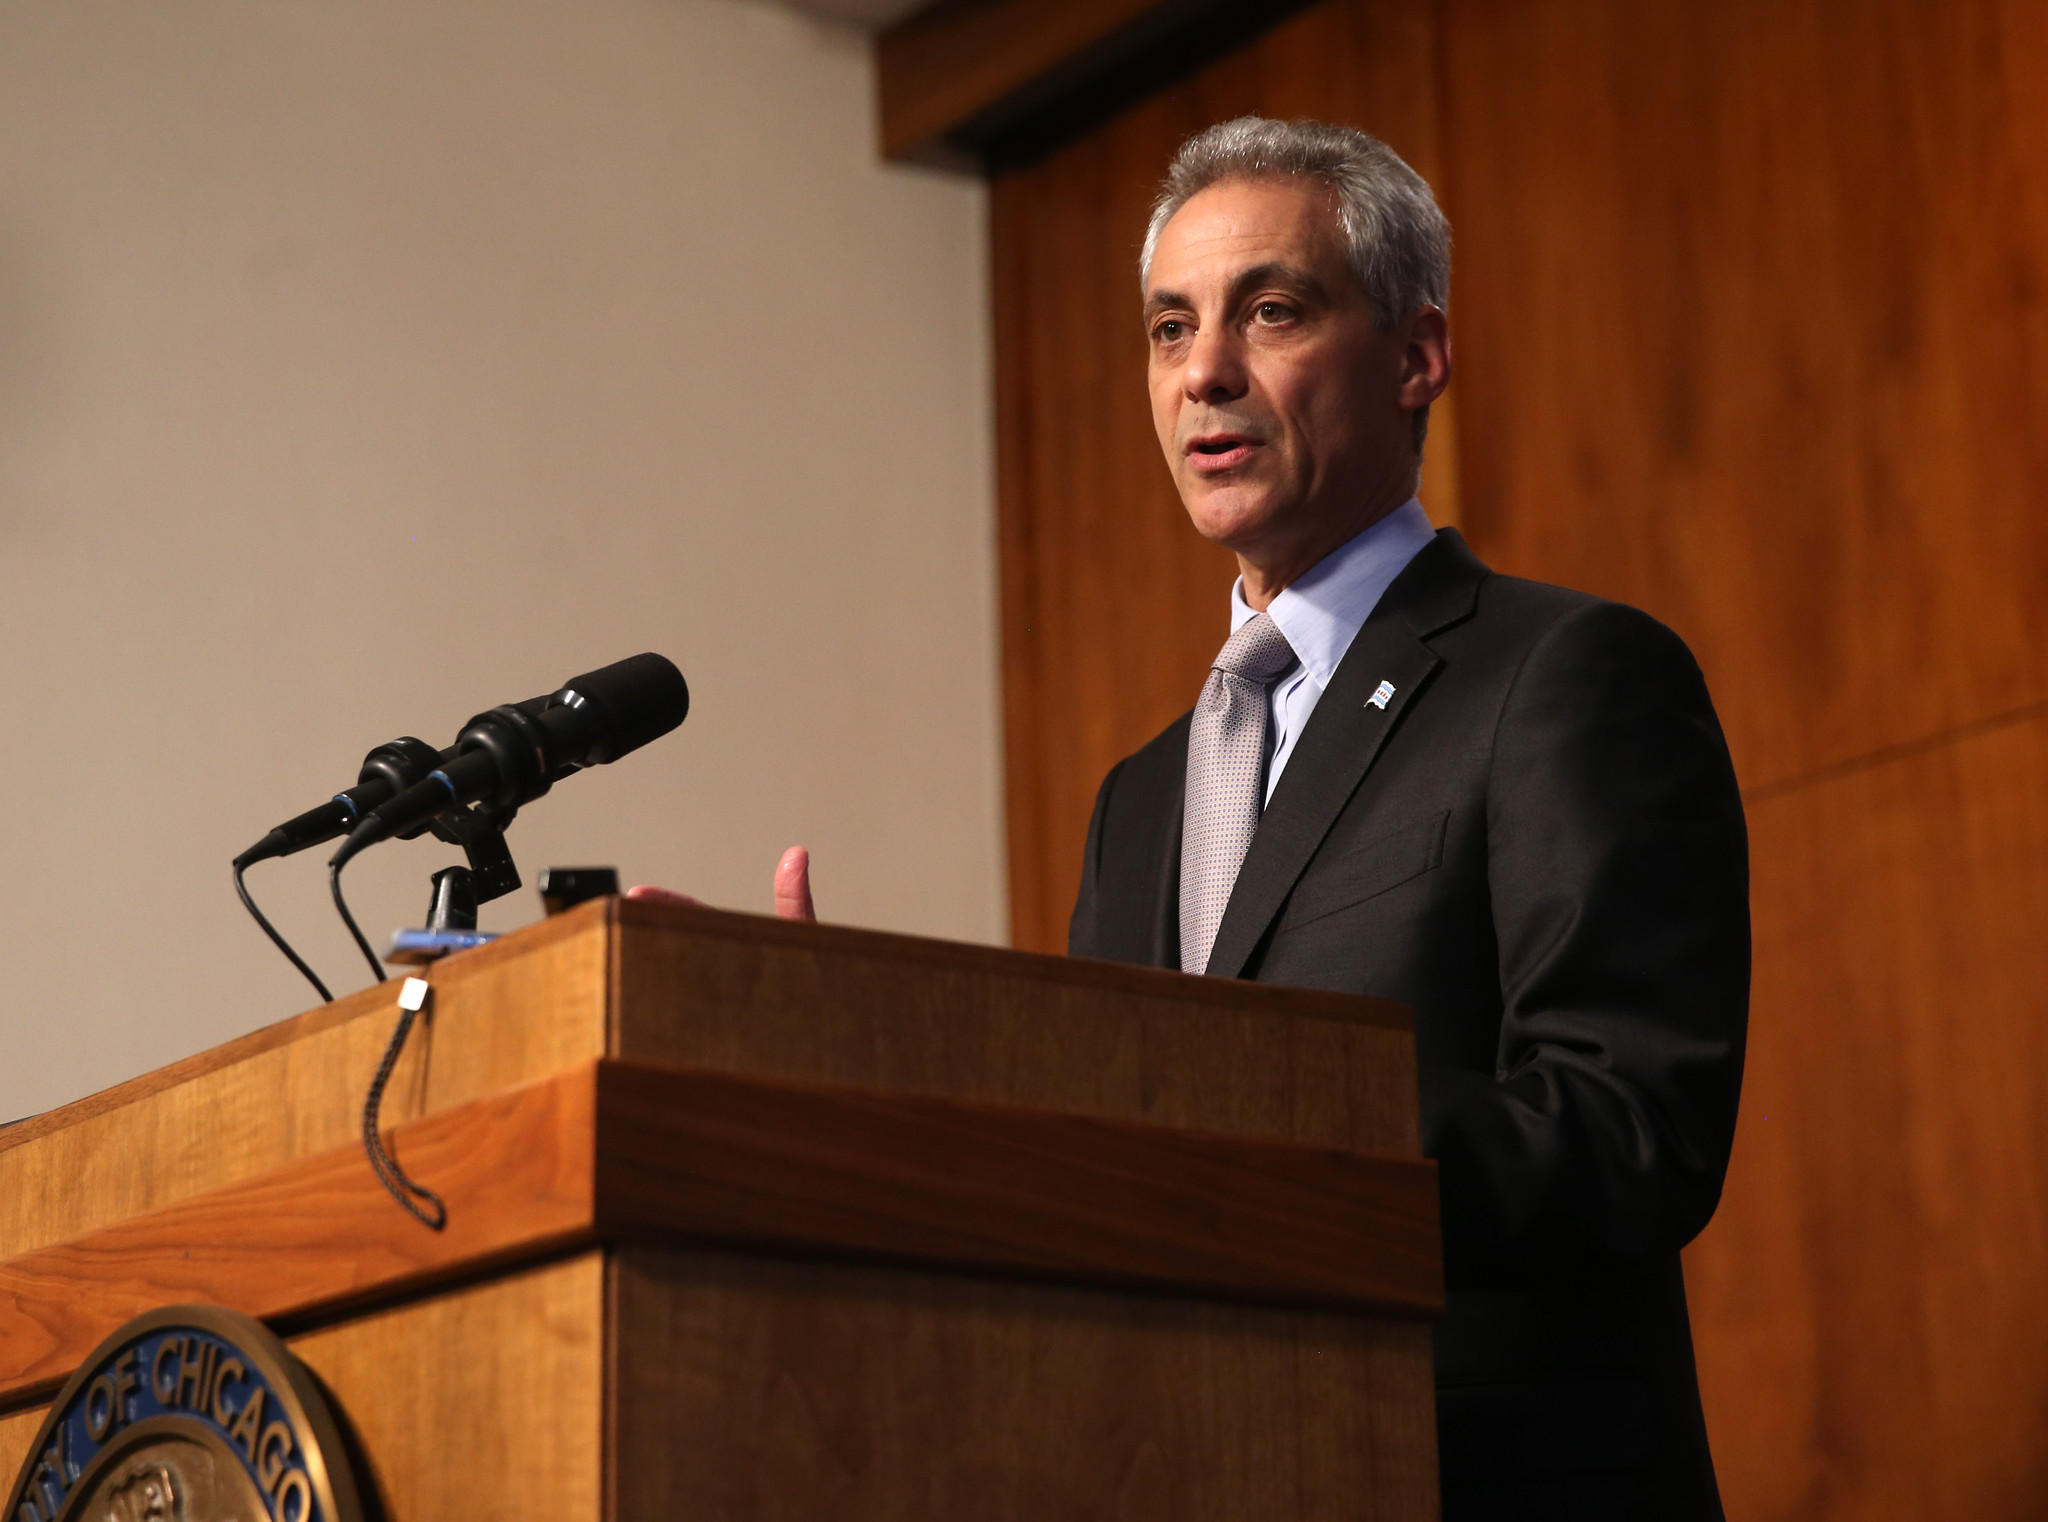 Chicago Mayor Rahm Emanuel makes a statement at City Hall on the pension bill passing in Springfield.